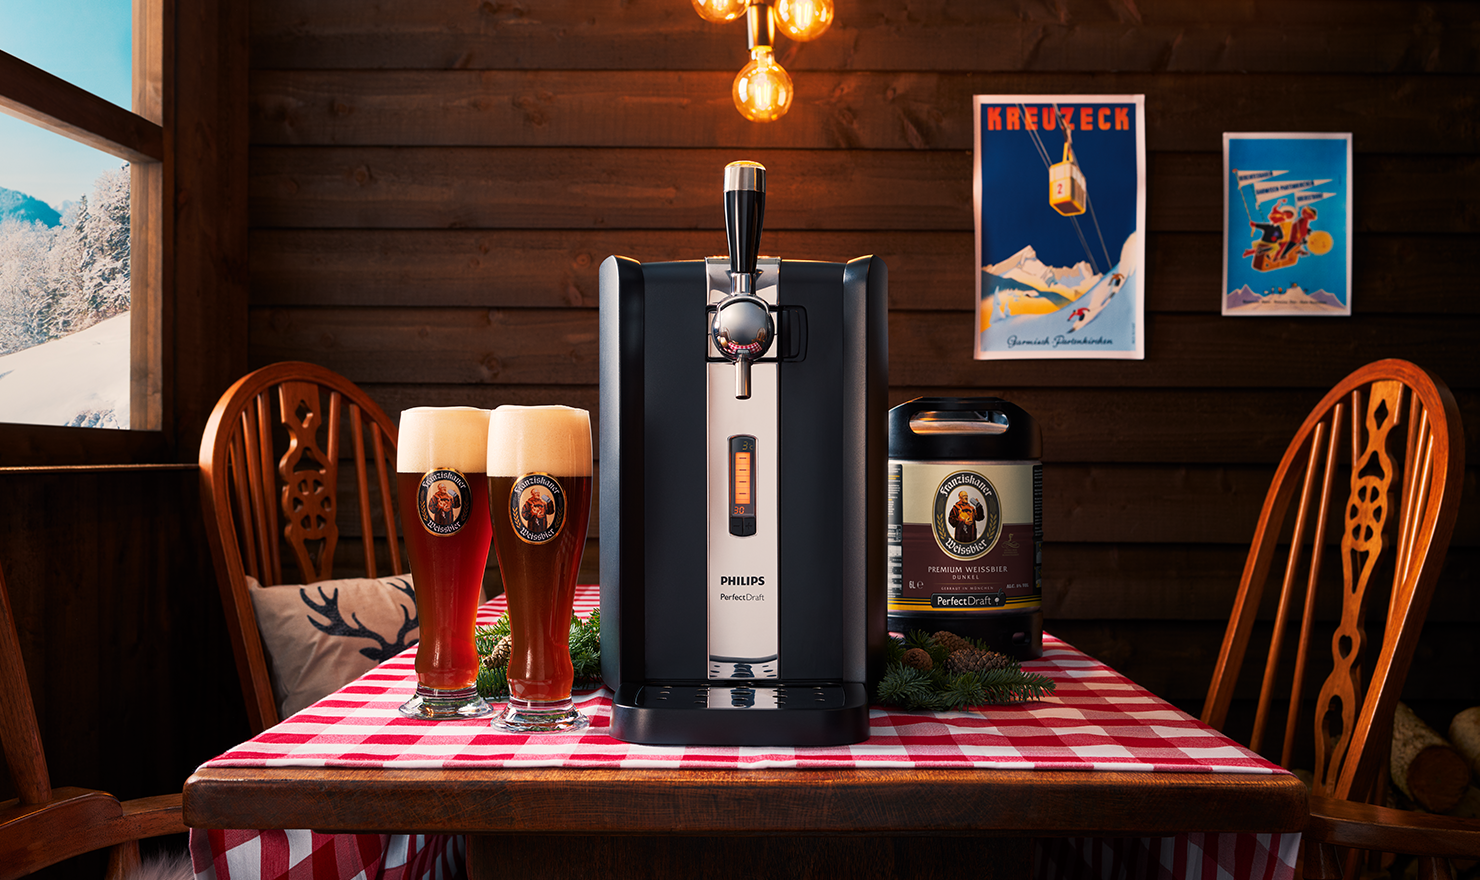 Taste of the Alps – Franziskaner Dunkel